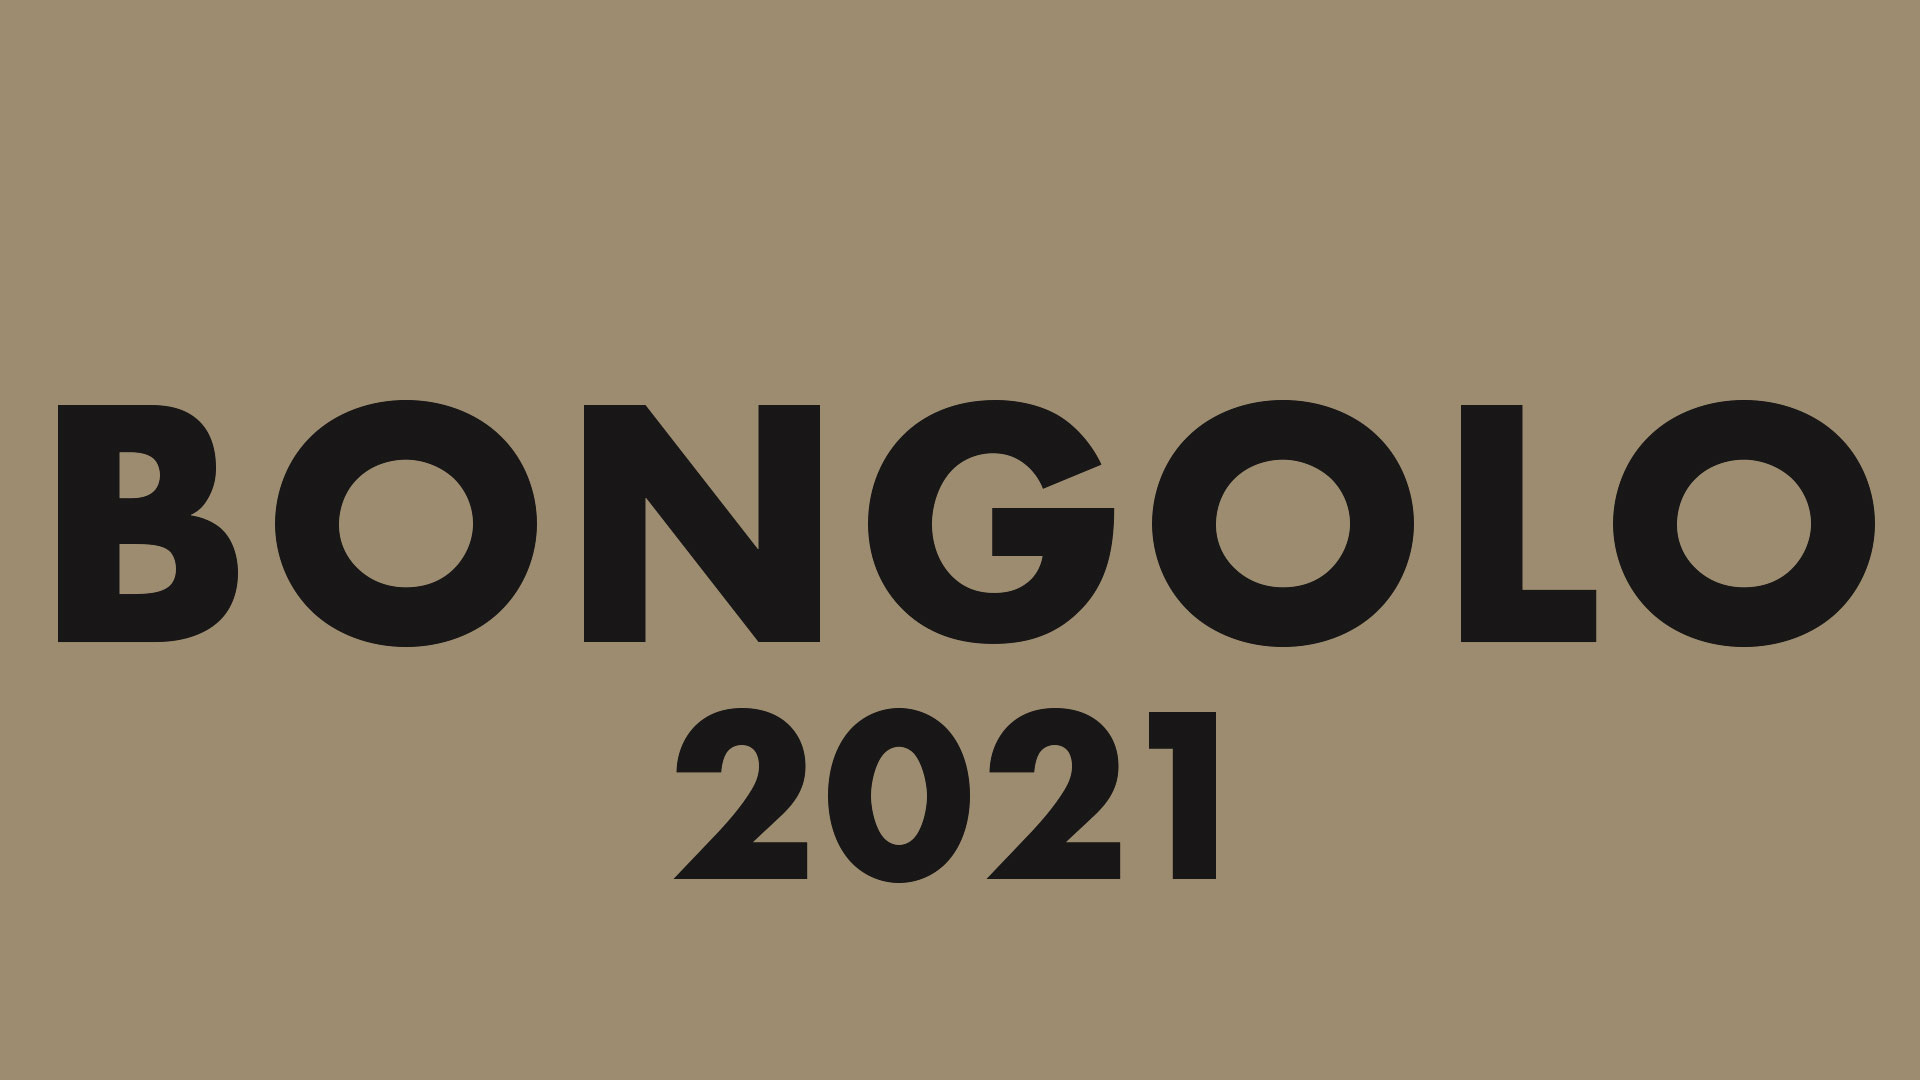 Ark Transportation - Bongolo 2021 Helping Others In Need